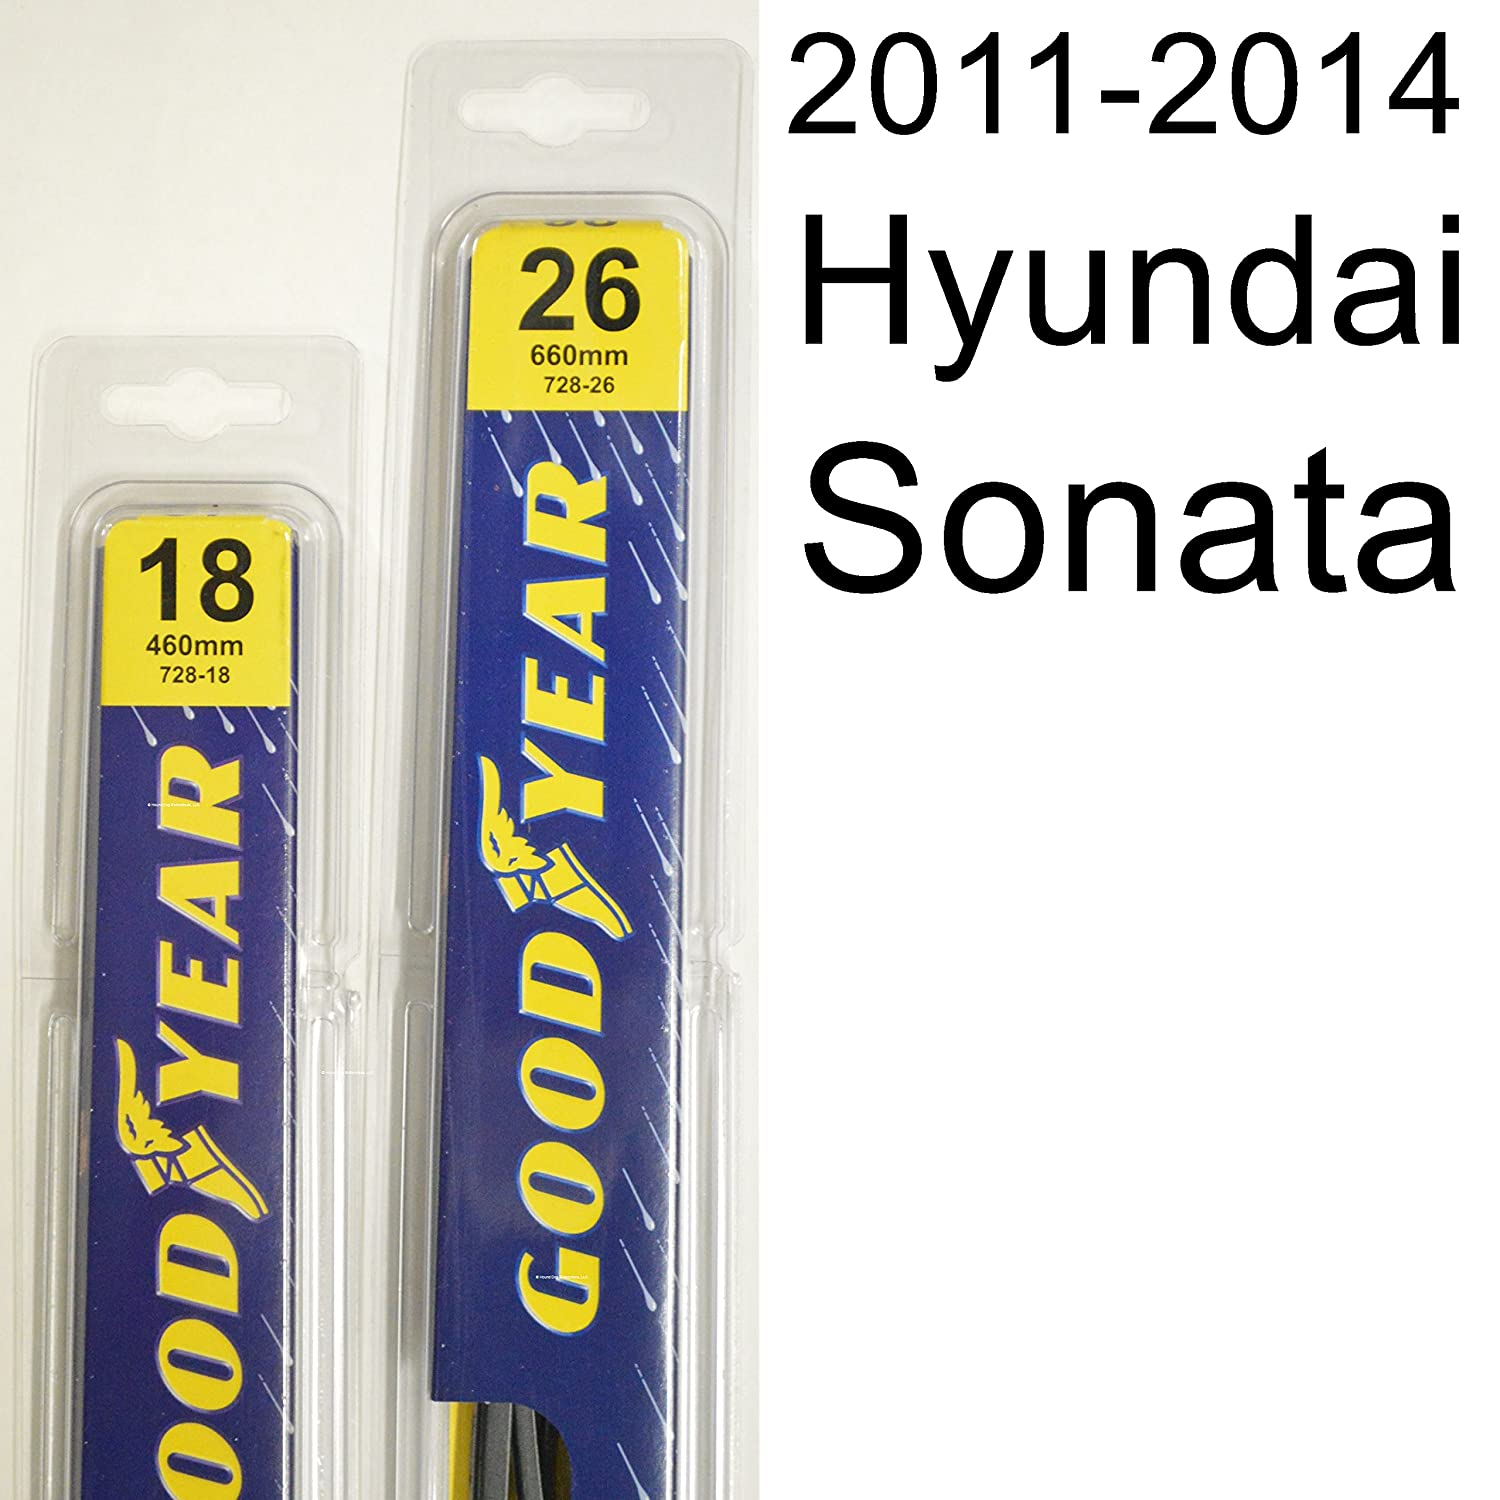 91stmzuCLgL._SL1500_ amazon com hyundai sonata (2011 2014) wiper blade kit set  at crackthecode.co